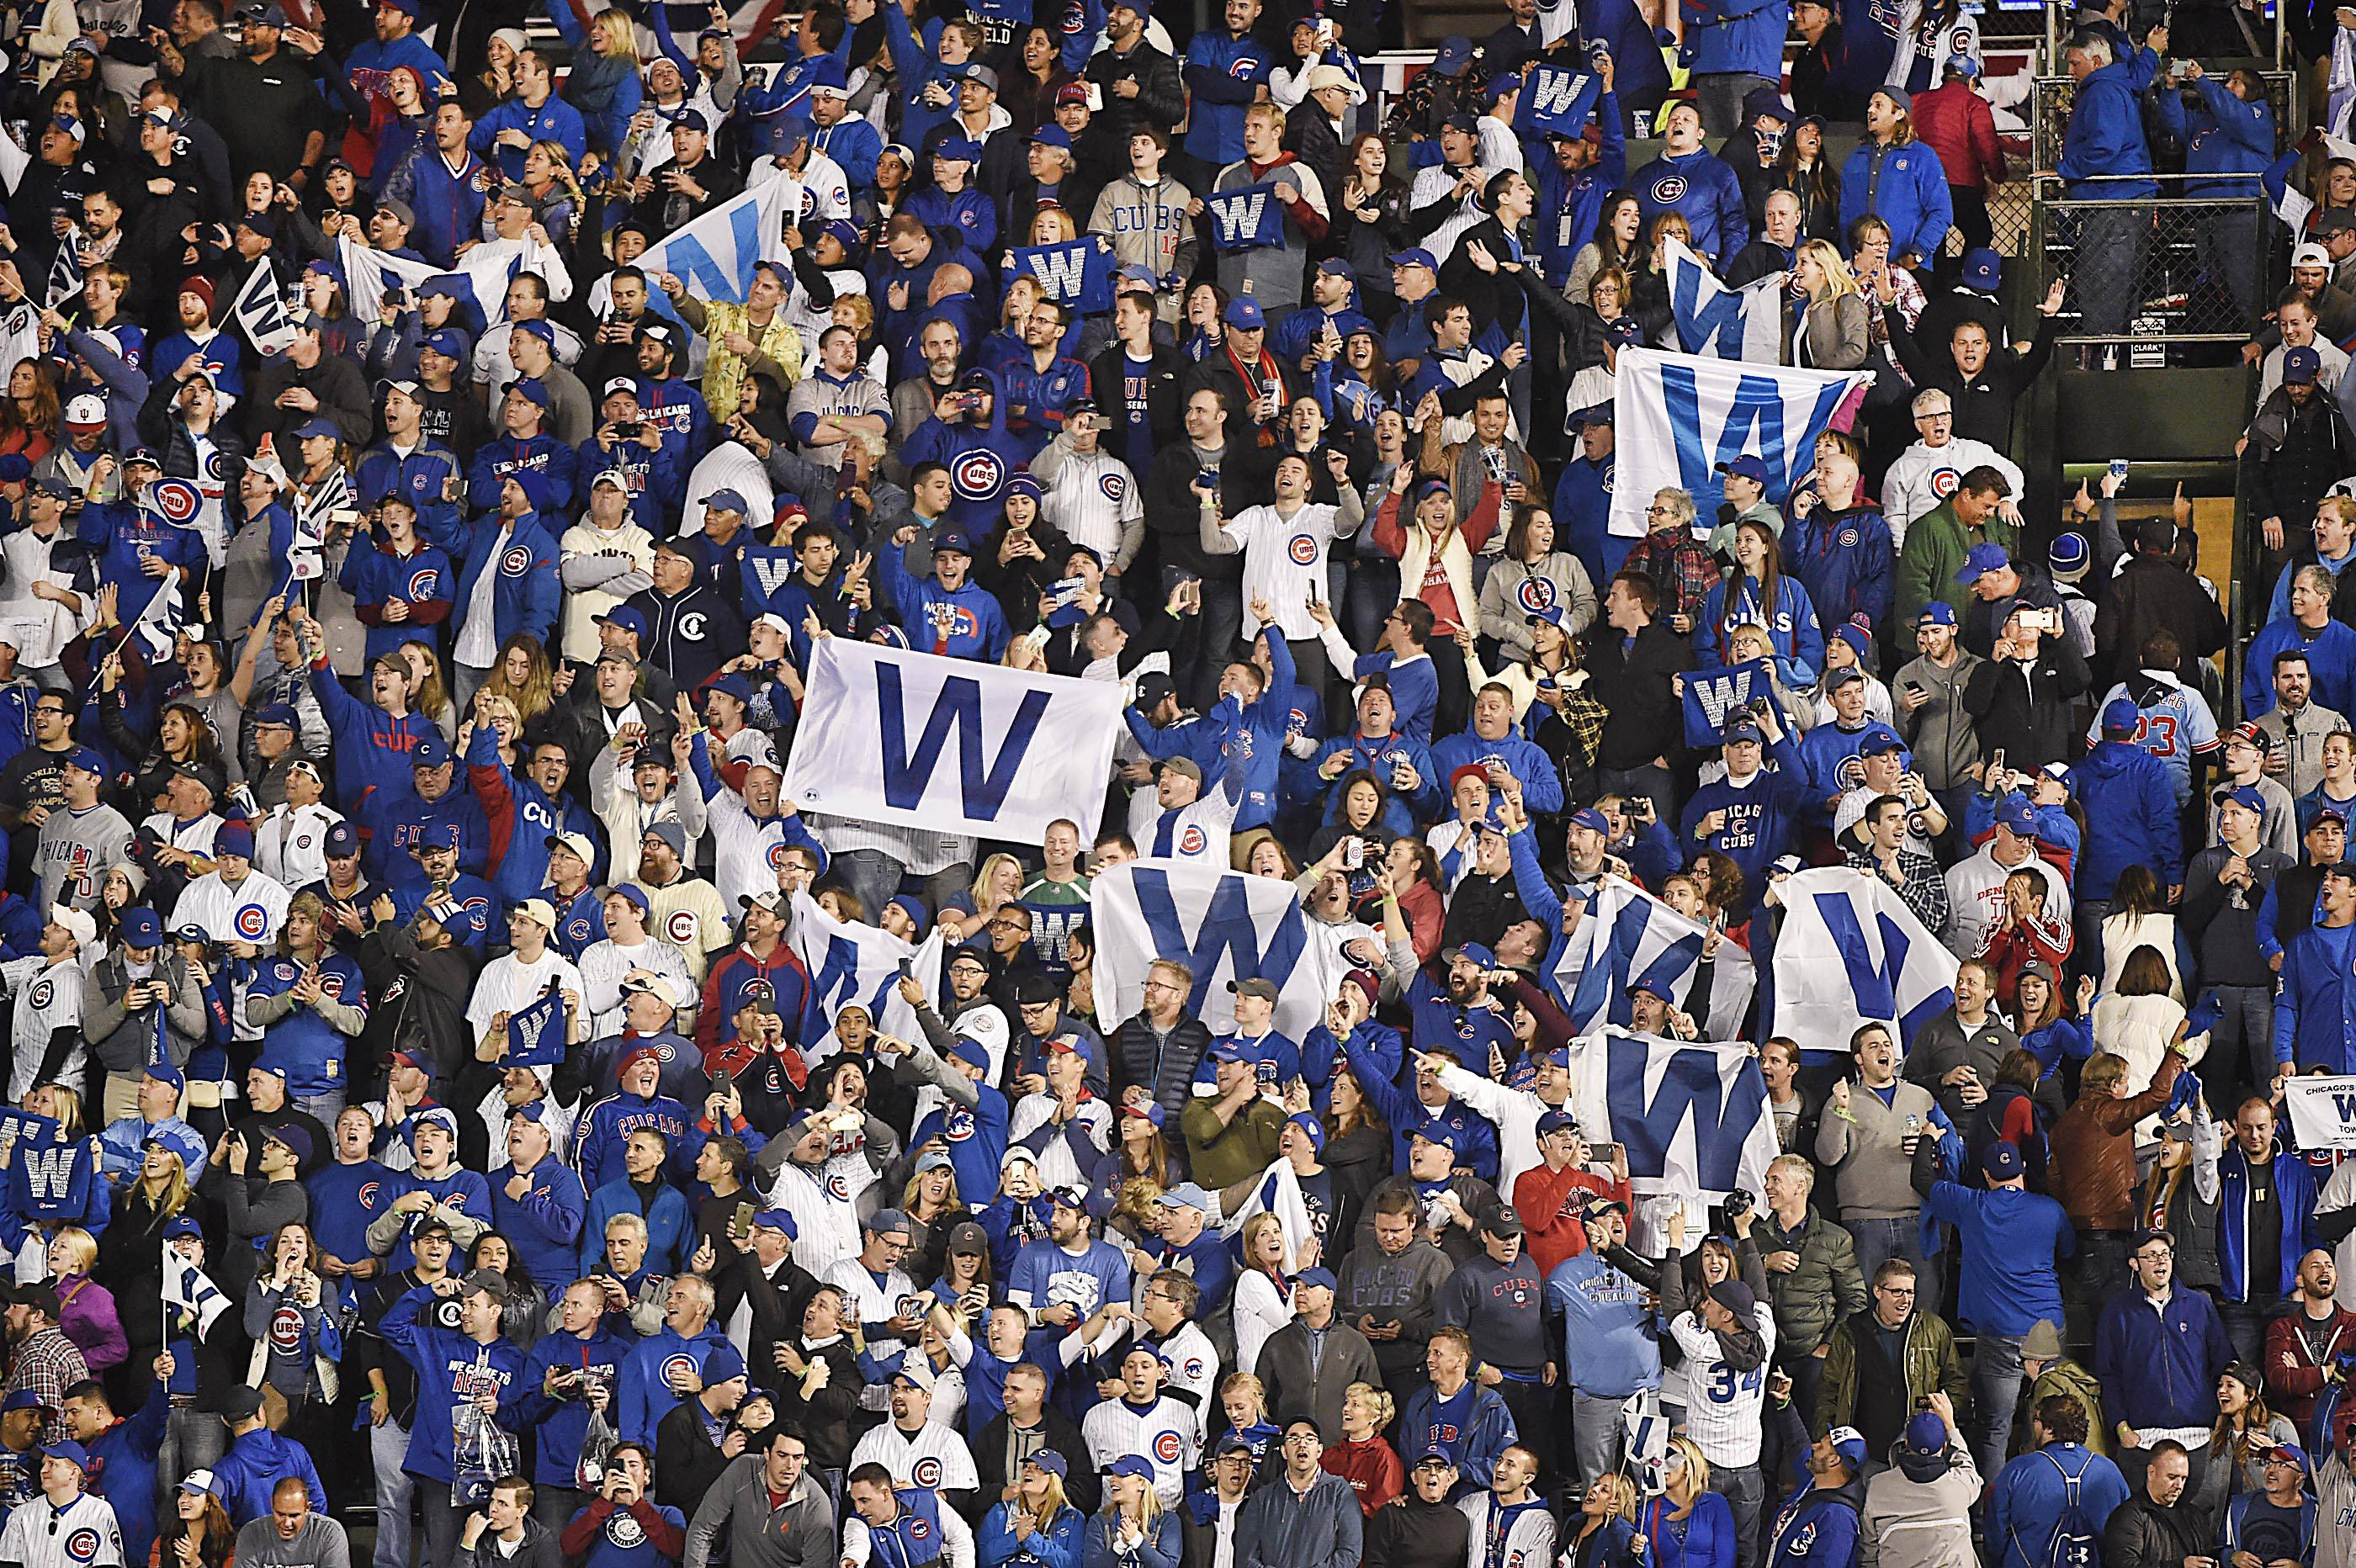 Imrem: Cubs raise prices. Also, water is wet